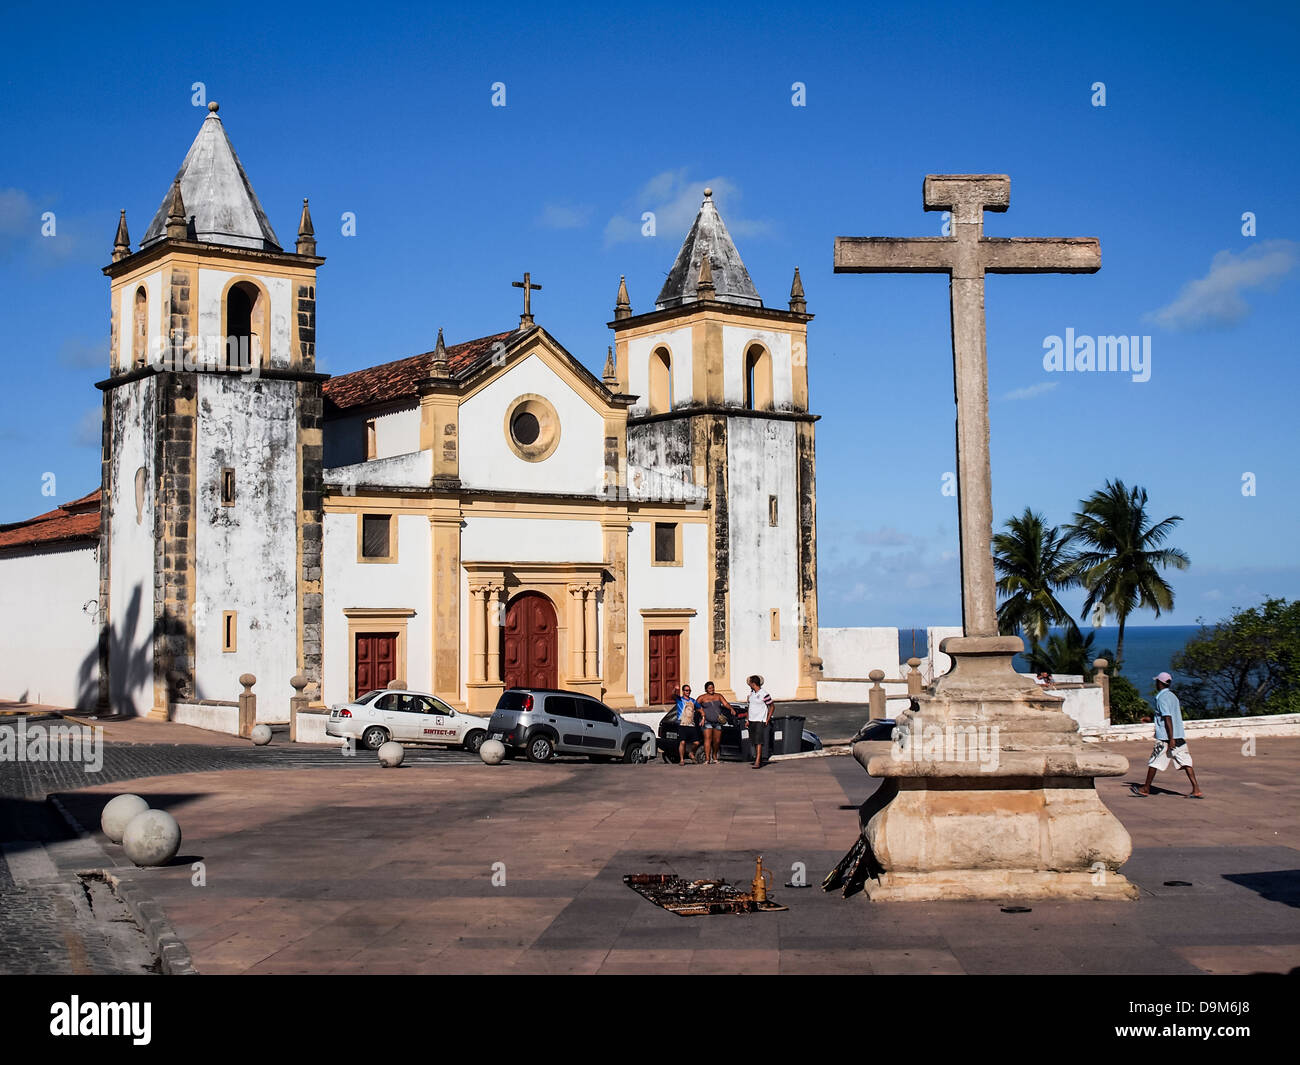 Santo Antonio do Carmo church in Olinda near Recife, Brazil. - Stock Image